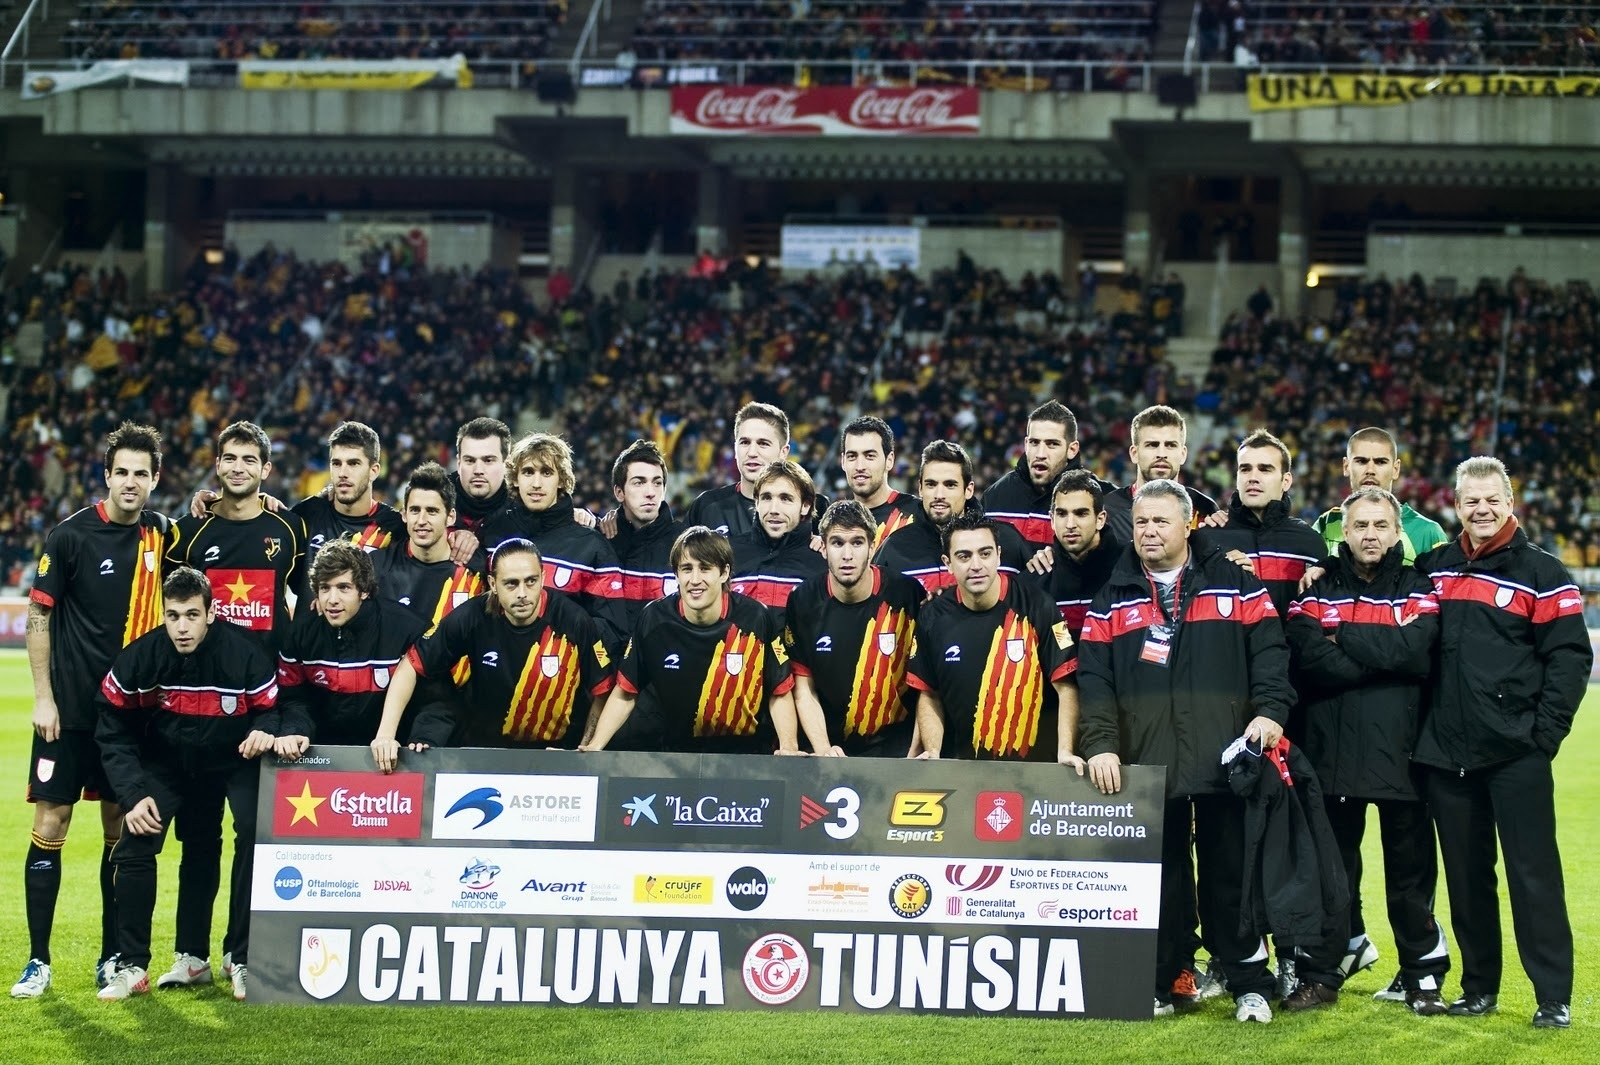 Catalunya-2011-Astore-home-kit-black-blck-black-line-up.jpg